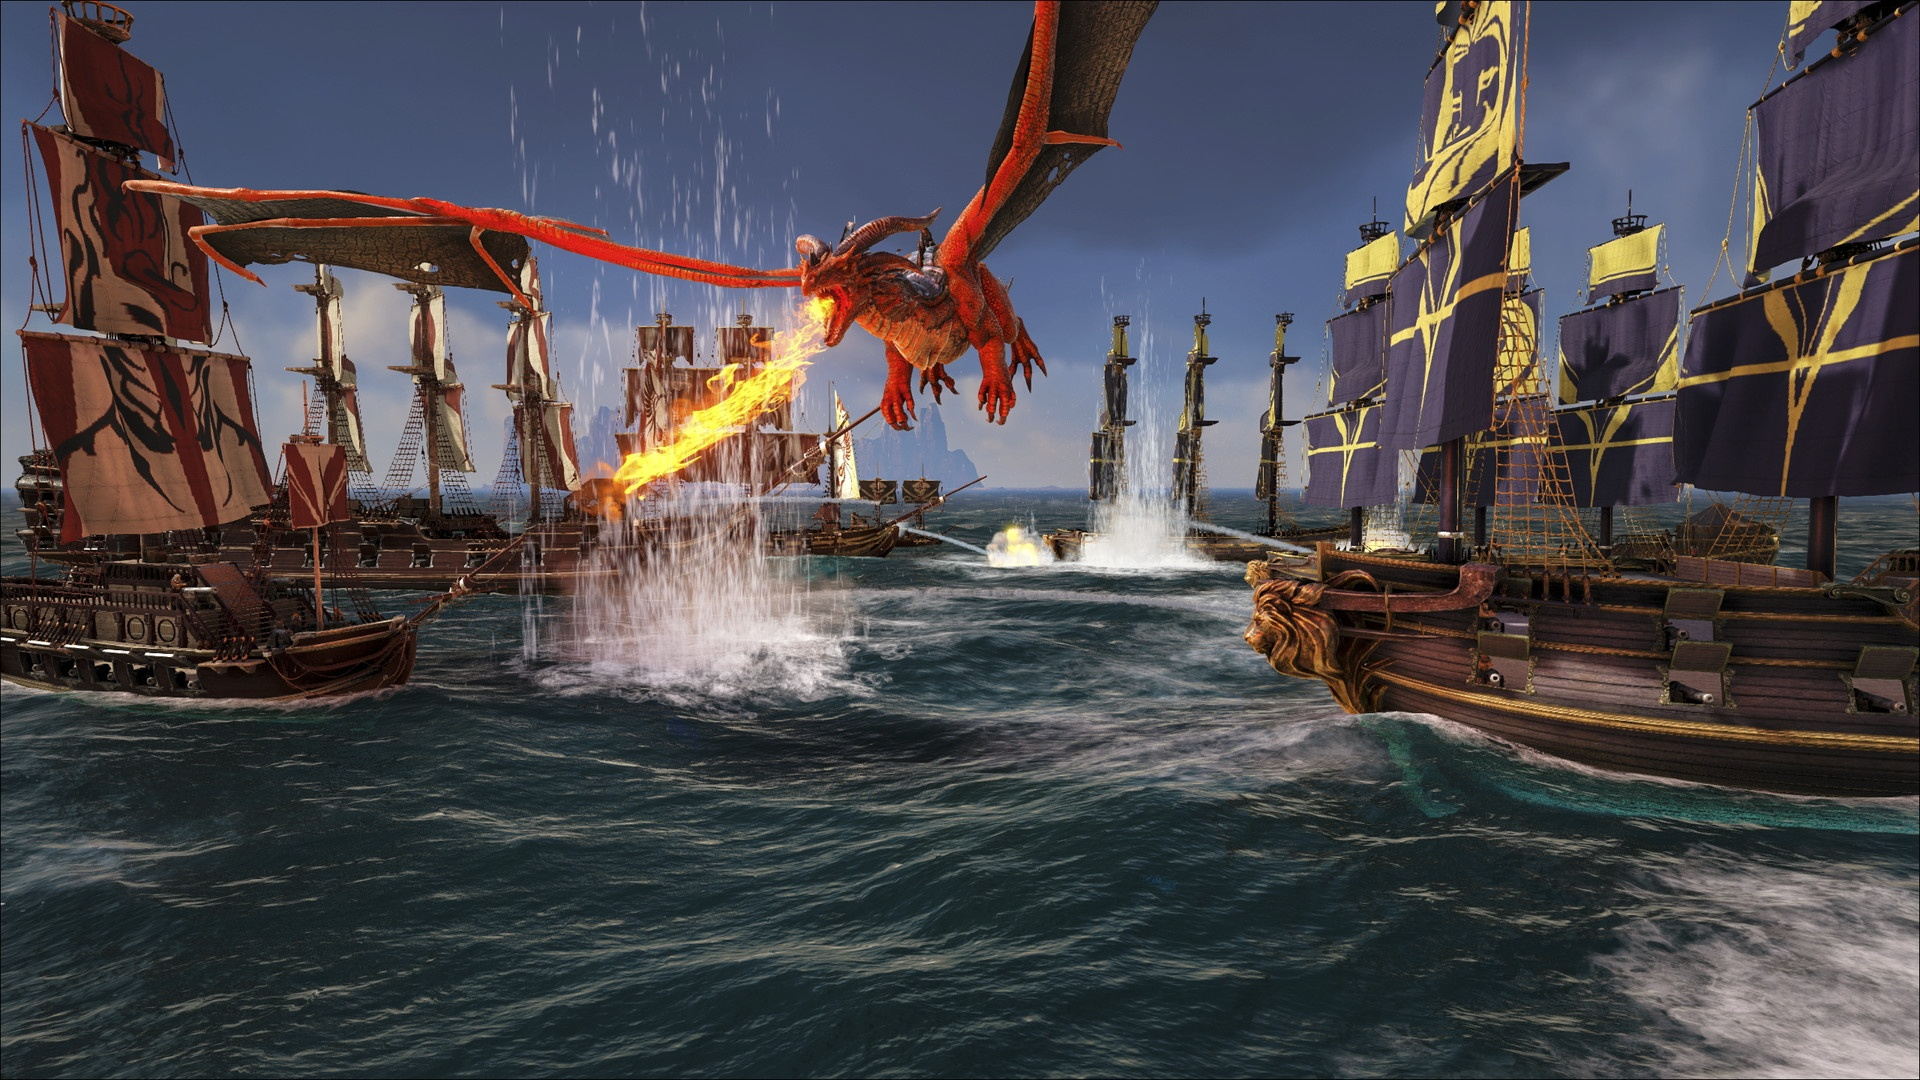 Action, adventure, Early Access, Grapeshot Games, Instinct Games, Massively Multiplayer, MMO, open world, PC, PC Review, Pirates!, Role Playing Game, RPG, Studio Wildcard, survival